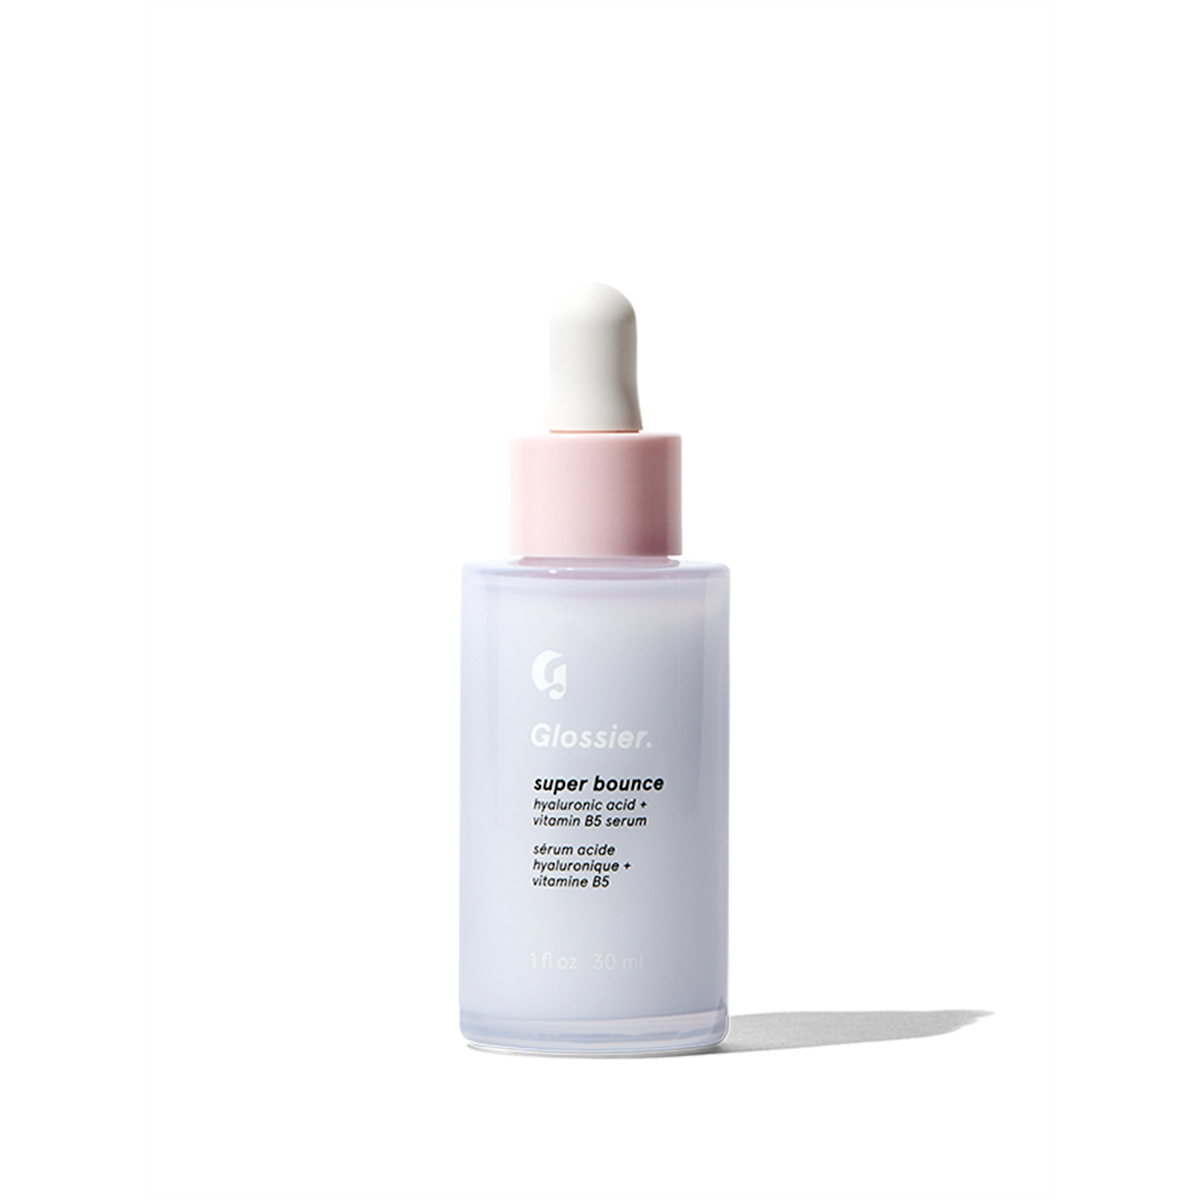 Glossier Super Bounce, Hydrating serum for you skin, 0.5 fl oz, plumps skin up with moisture and Vitamin B5 when your skin is feeling dry